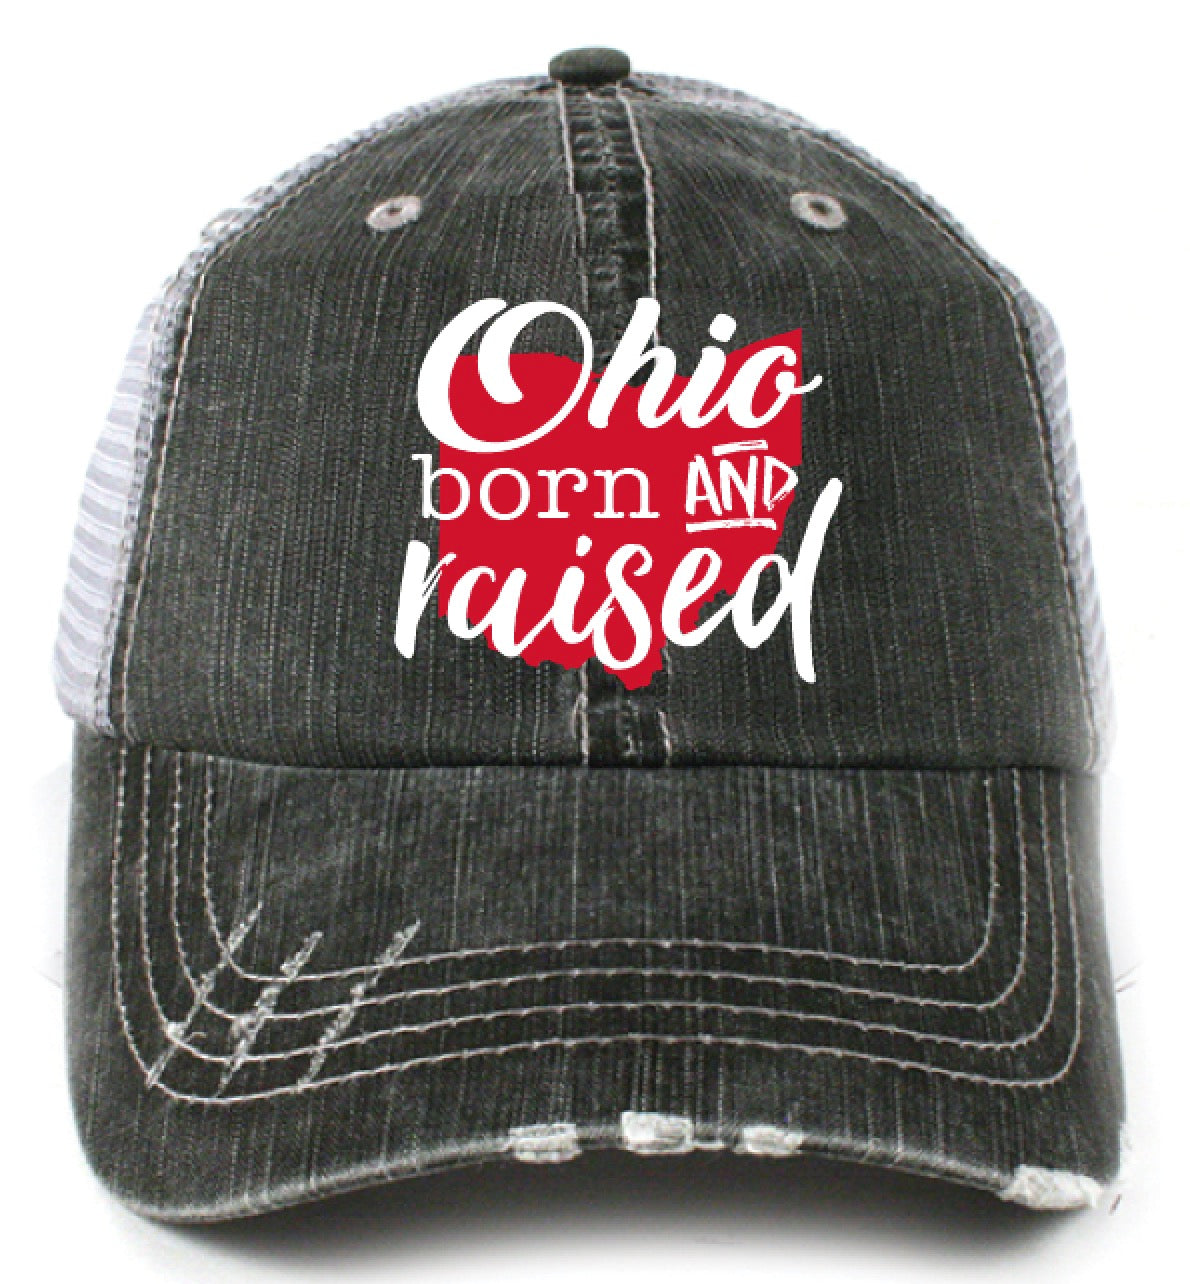 Katydid Ohio Born and Raised Wholesale Trucker Hats